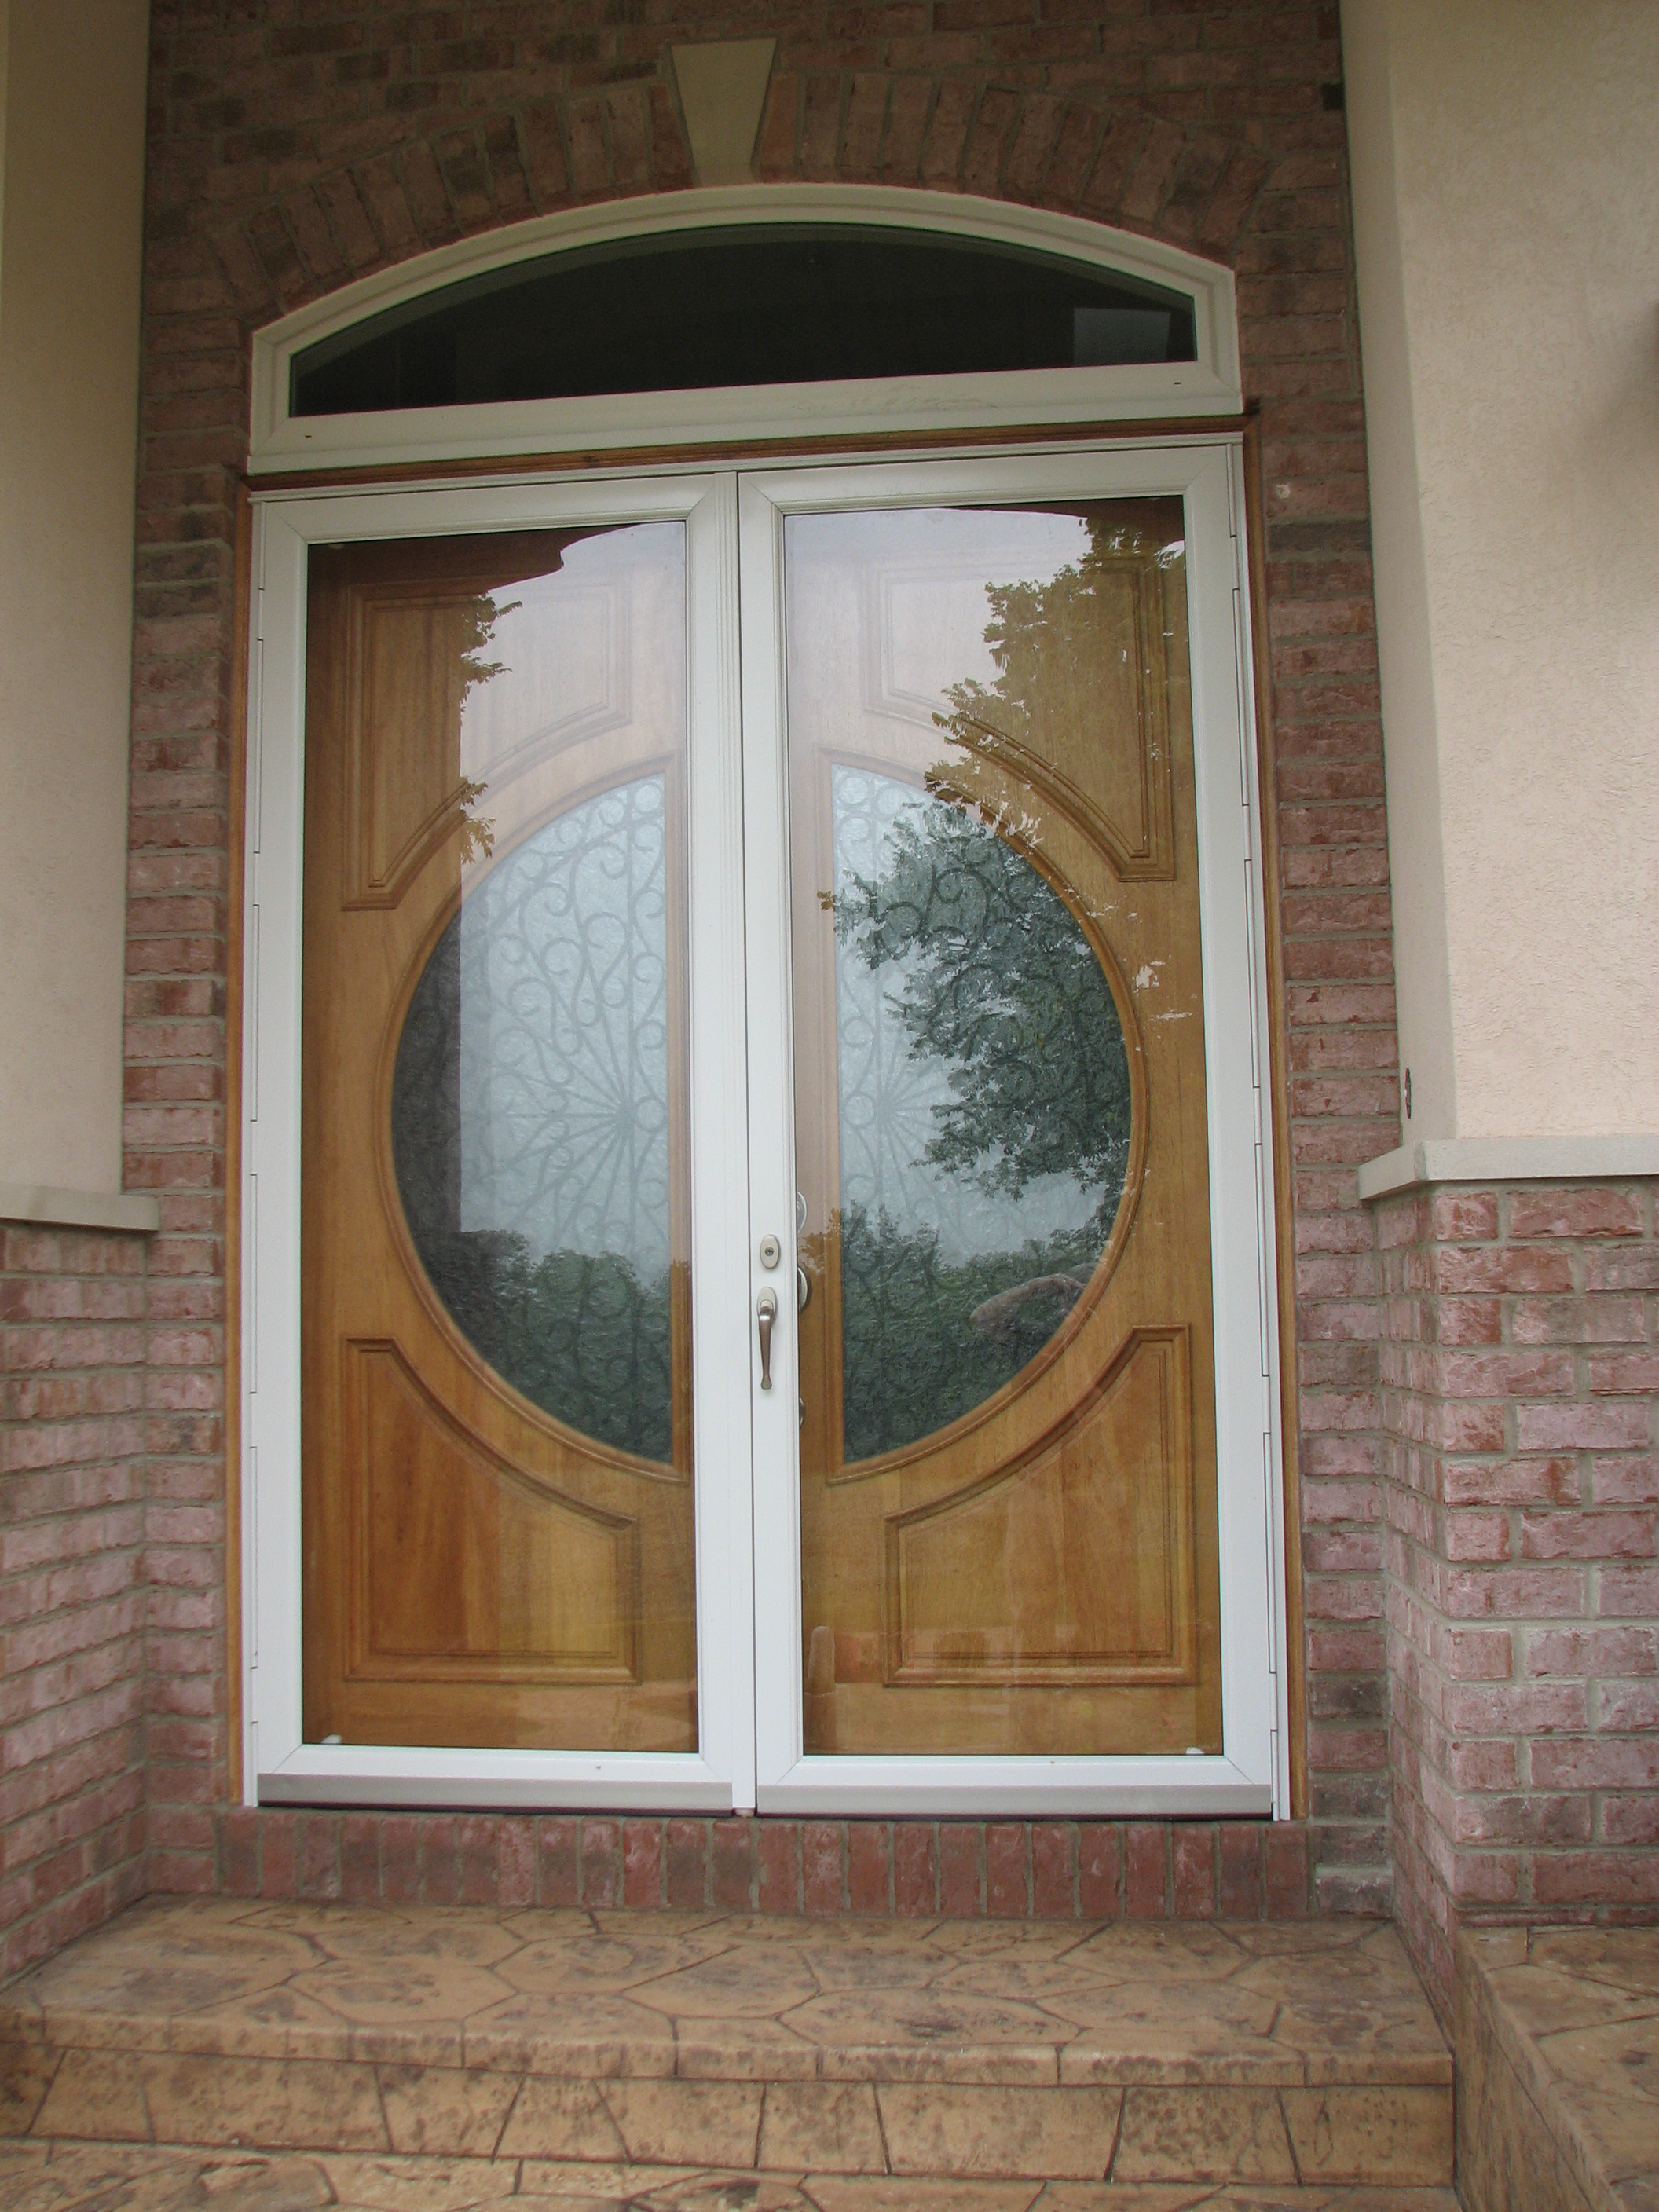 Styleline thermal vue storm and screen doors for Storm doors for french doors